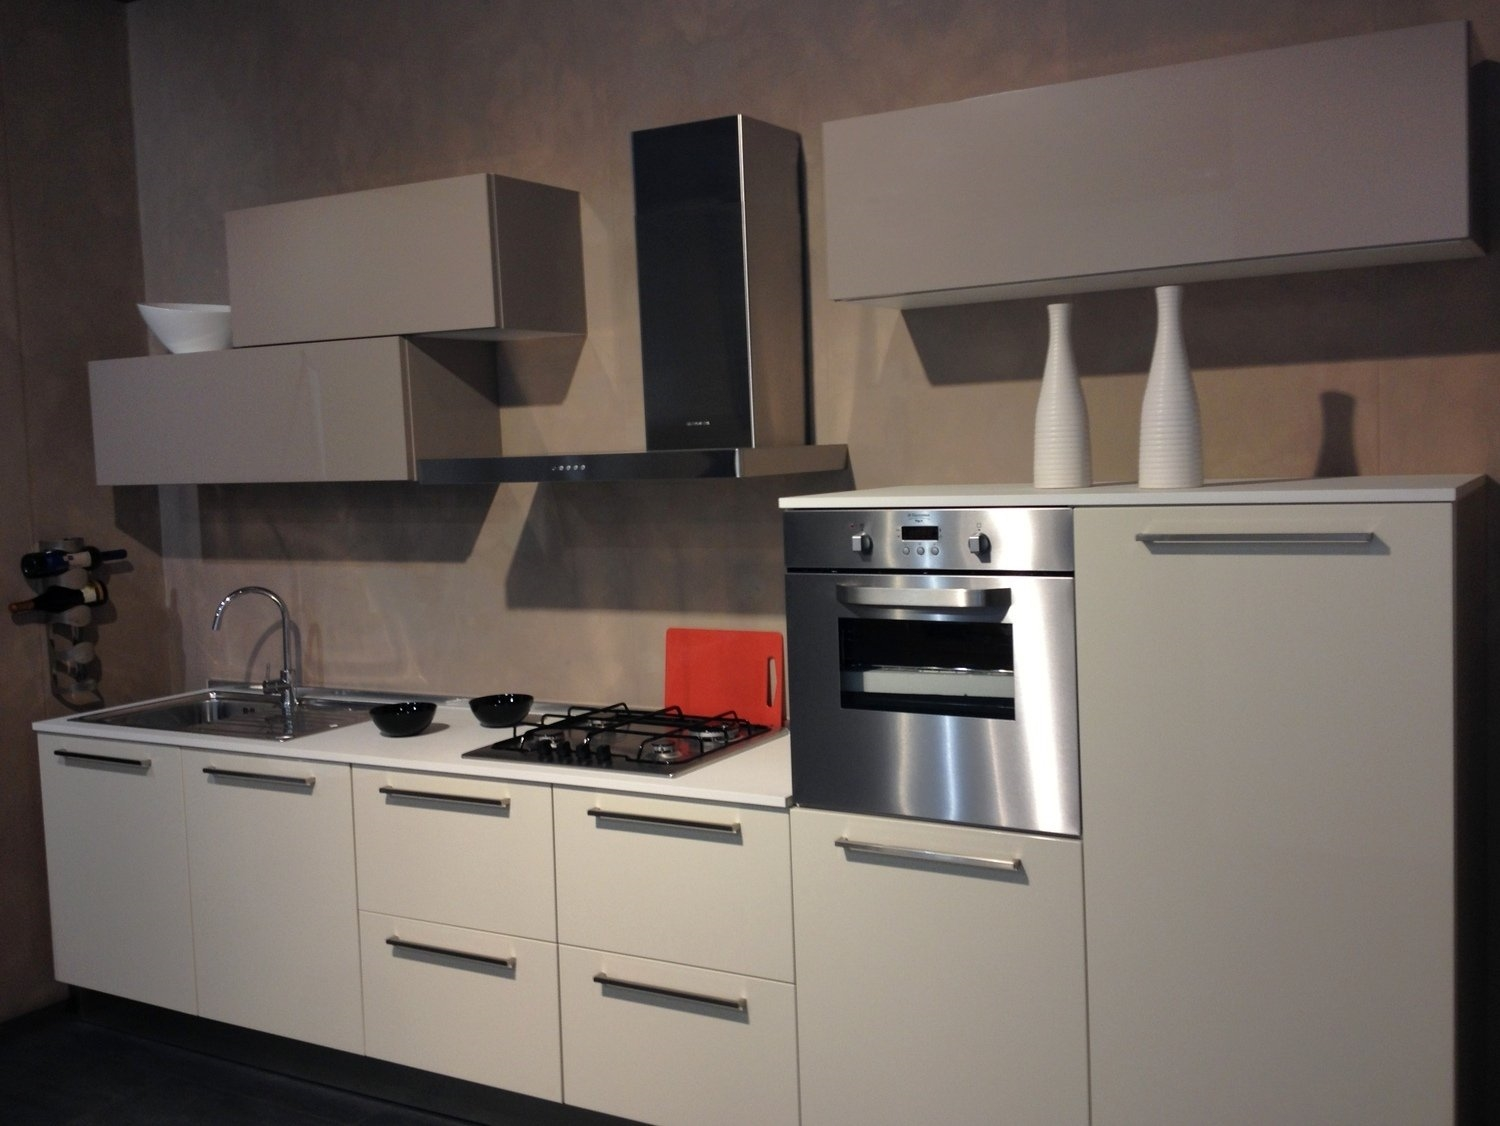 Occasioni Cucine Roma. Affordable Cucine In Offerta Roma ...